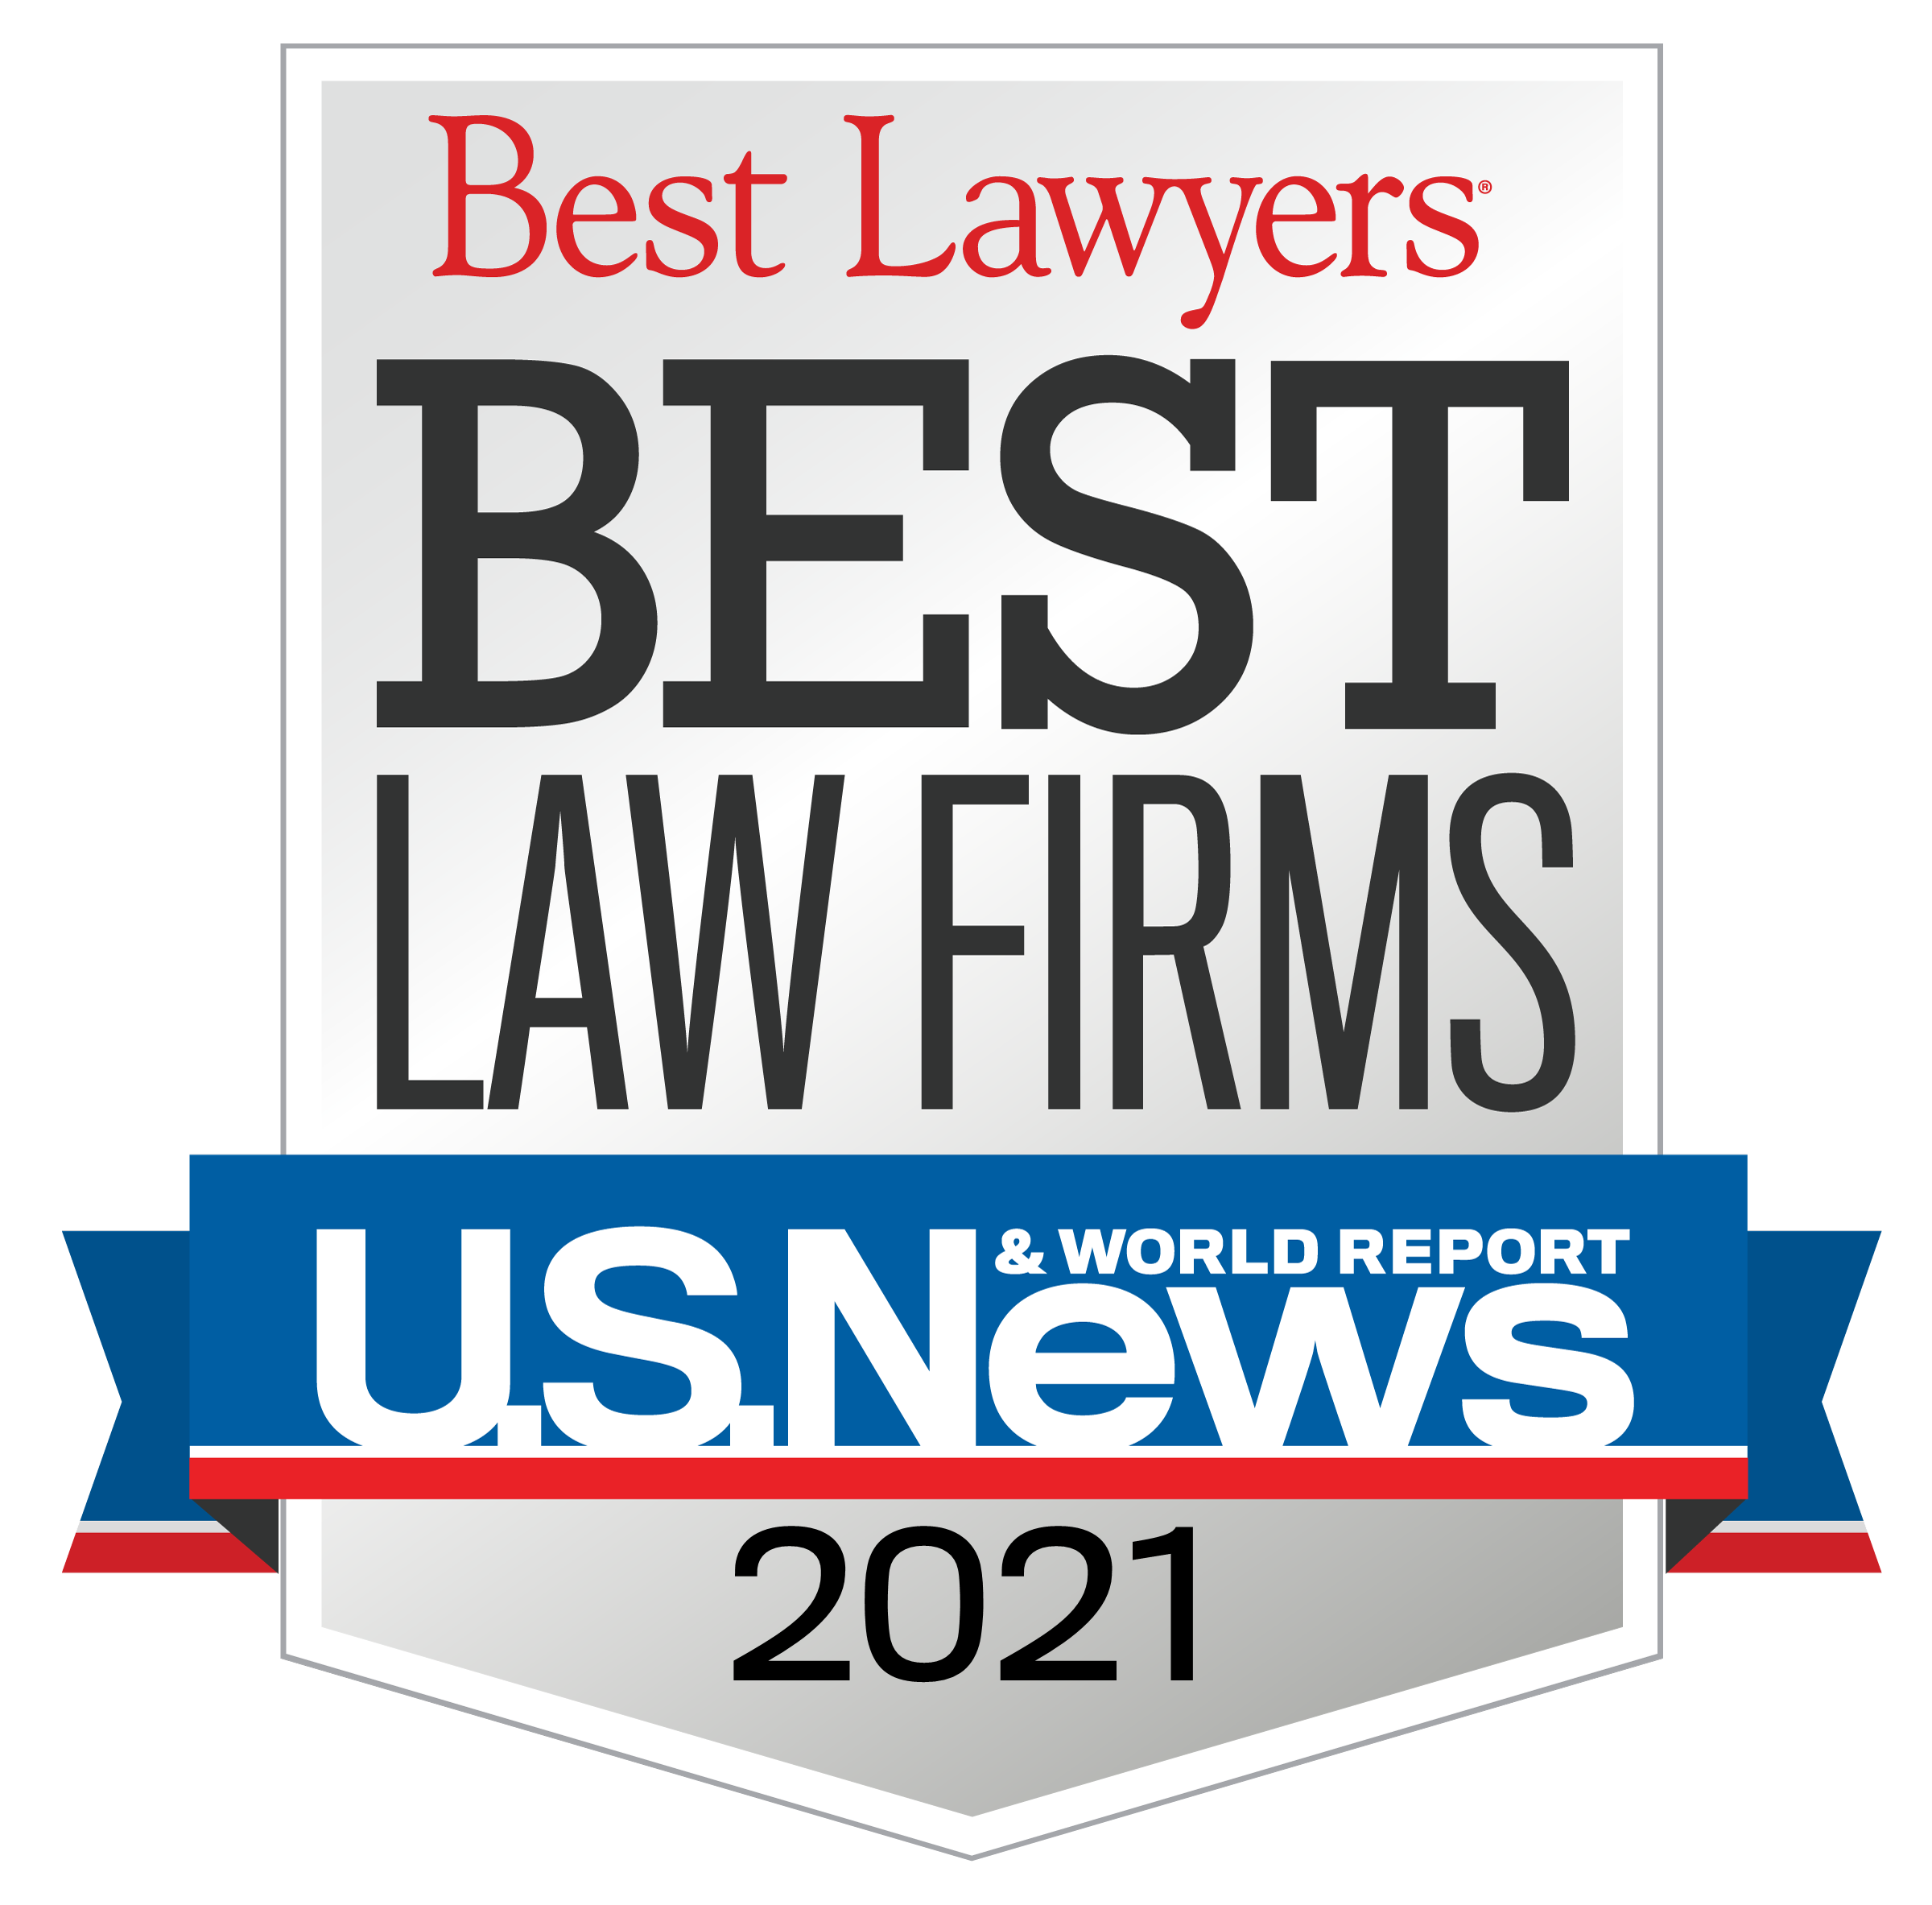 U.S. News Best Lawyers 2021